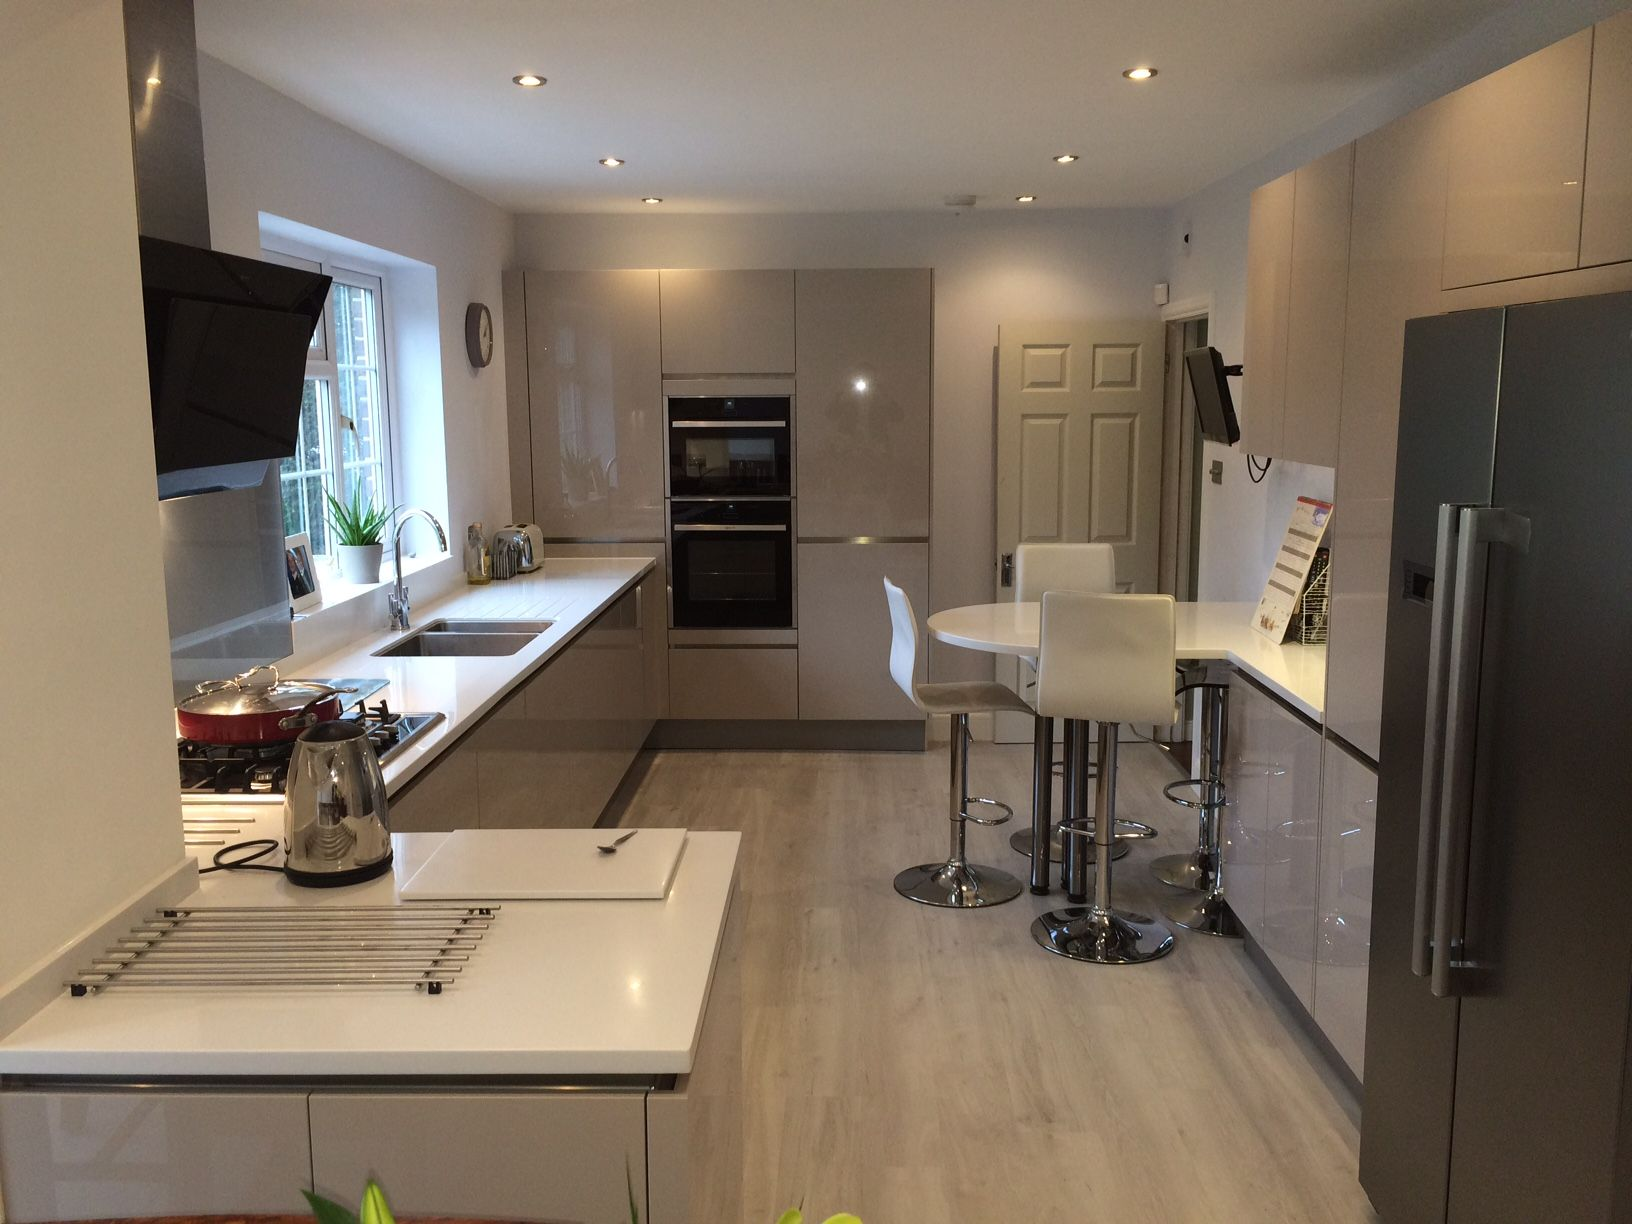 Image result for galley kitchen with breakfast bar | Kitchen ...